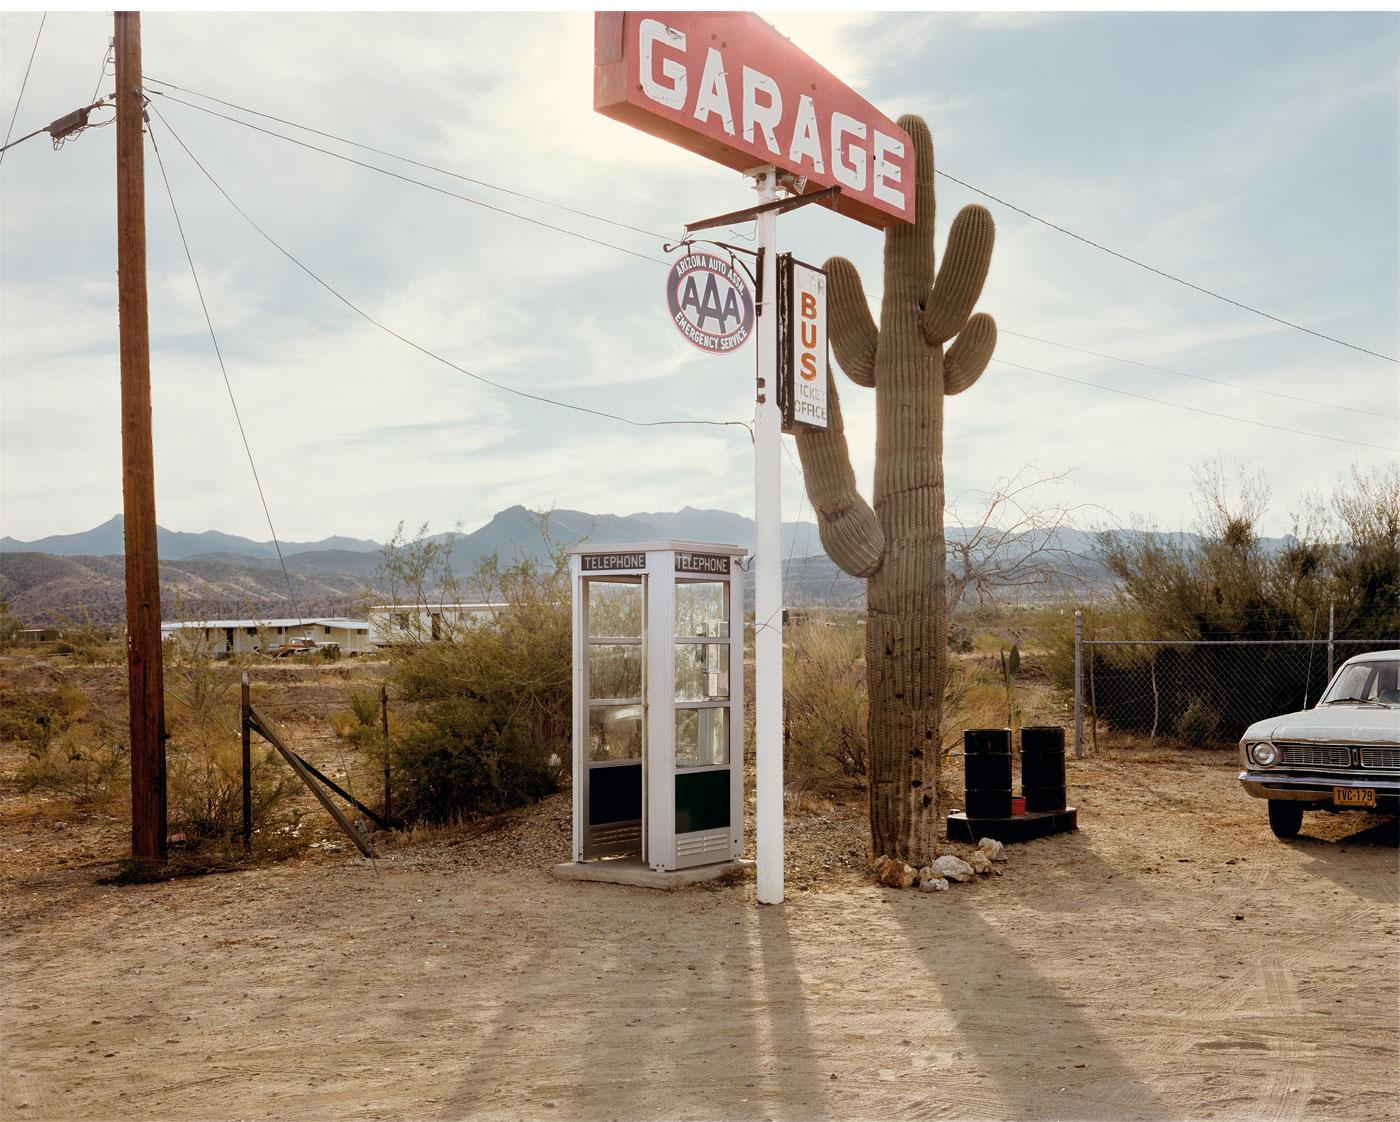 Telephone Booth by Stephen Shore